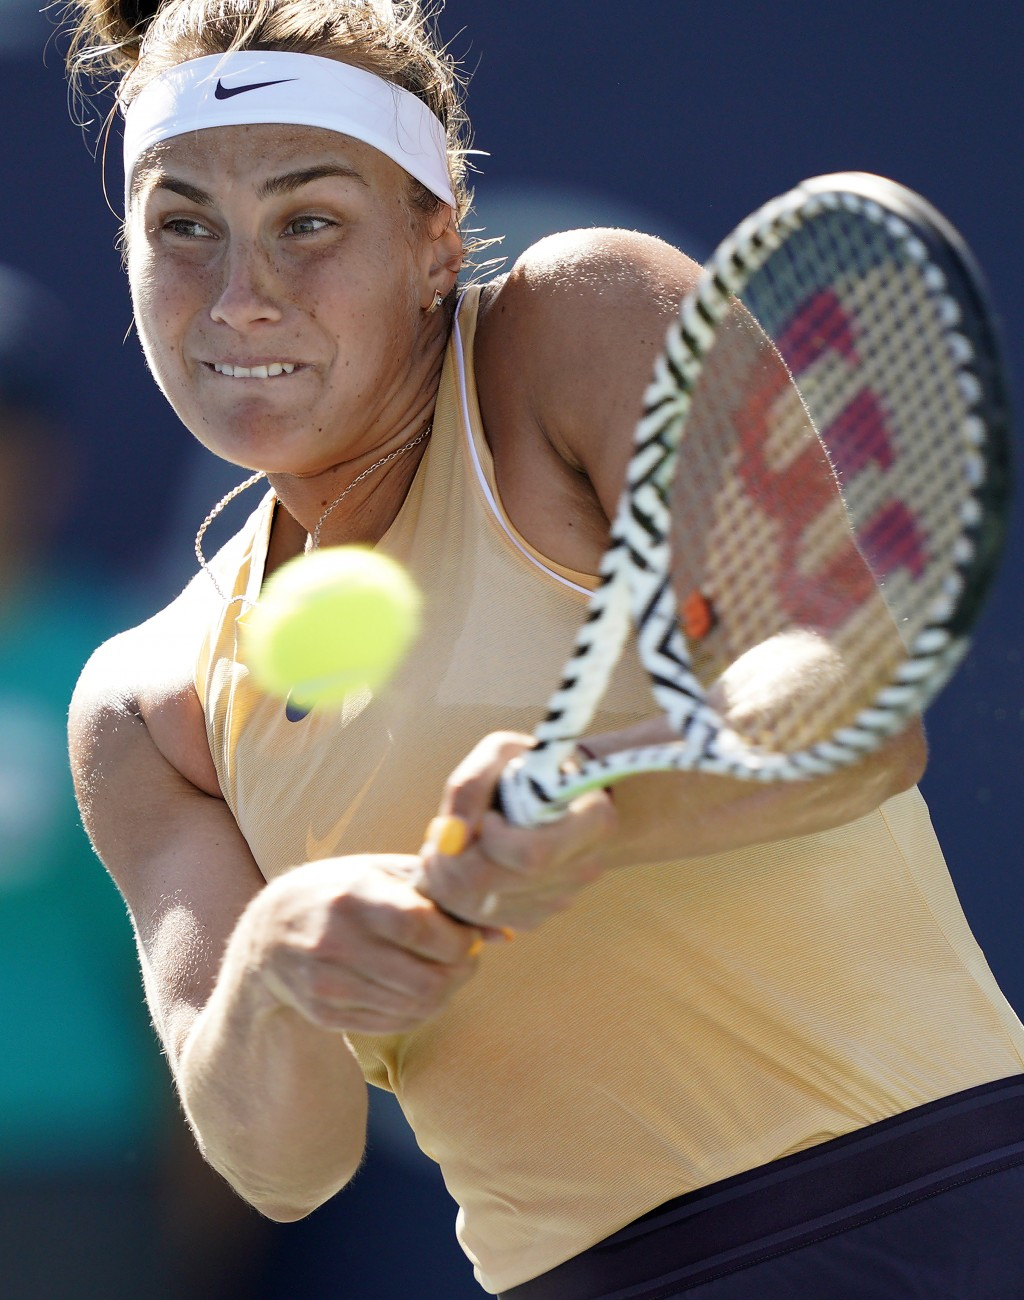 Aryna Sabalenka, of Belarus, hits a backhand to Zheng Saisai, of China, during the finals of the Mubadala Silicon Valley Classic tennis tournament in